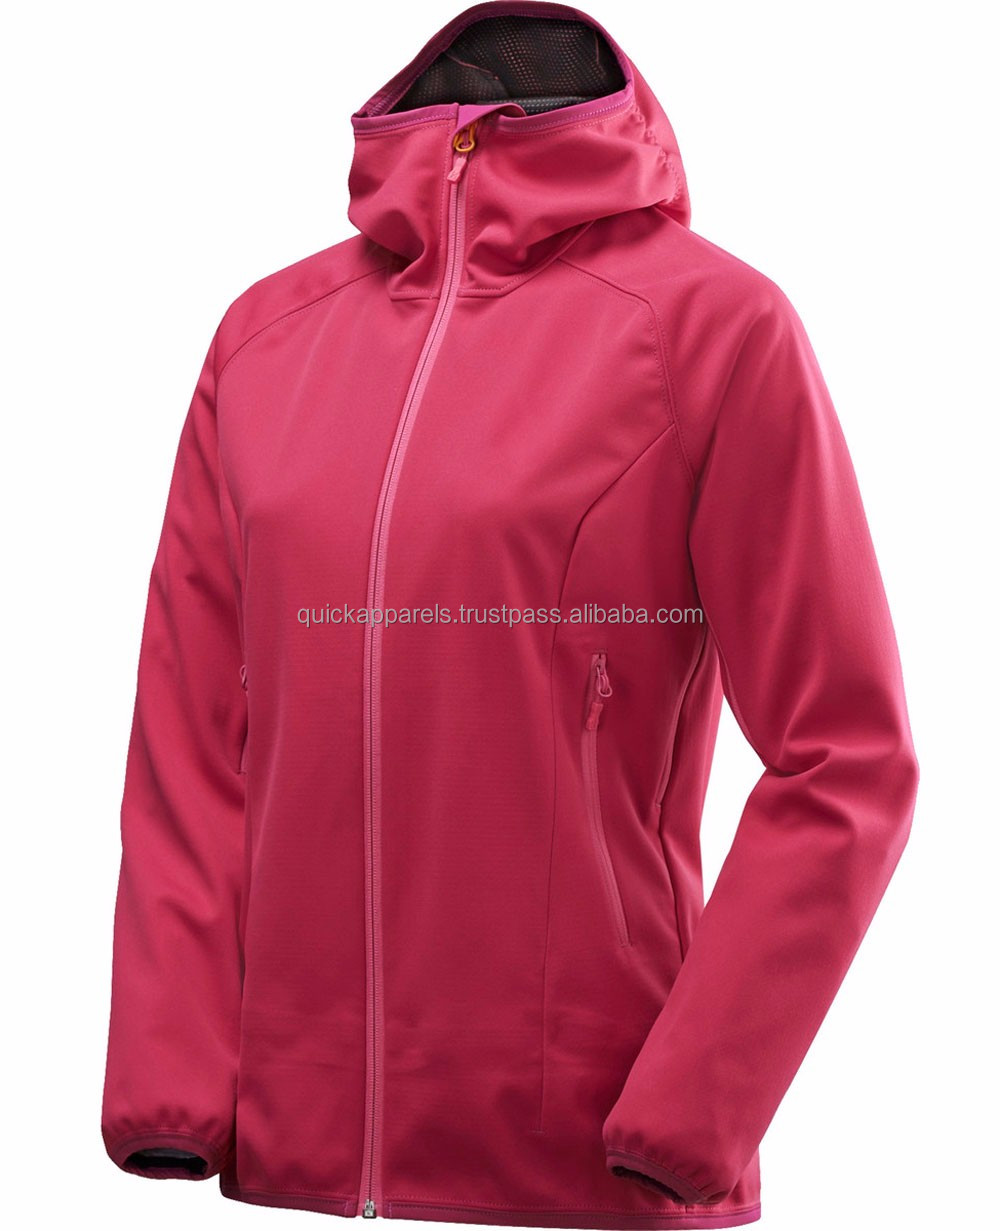 Latest design high quality woman 100% polyester soft shell sports jacket / lightweight golf jacket